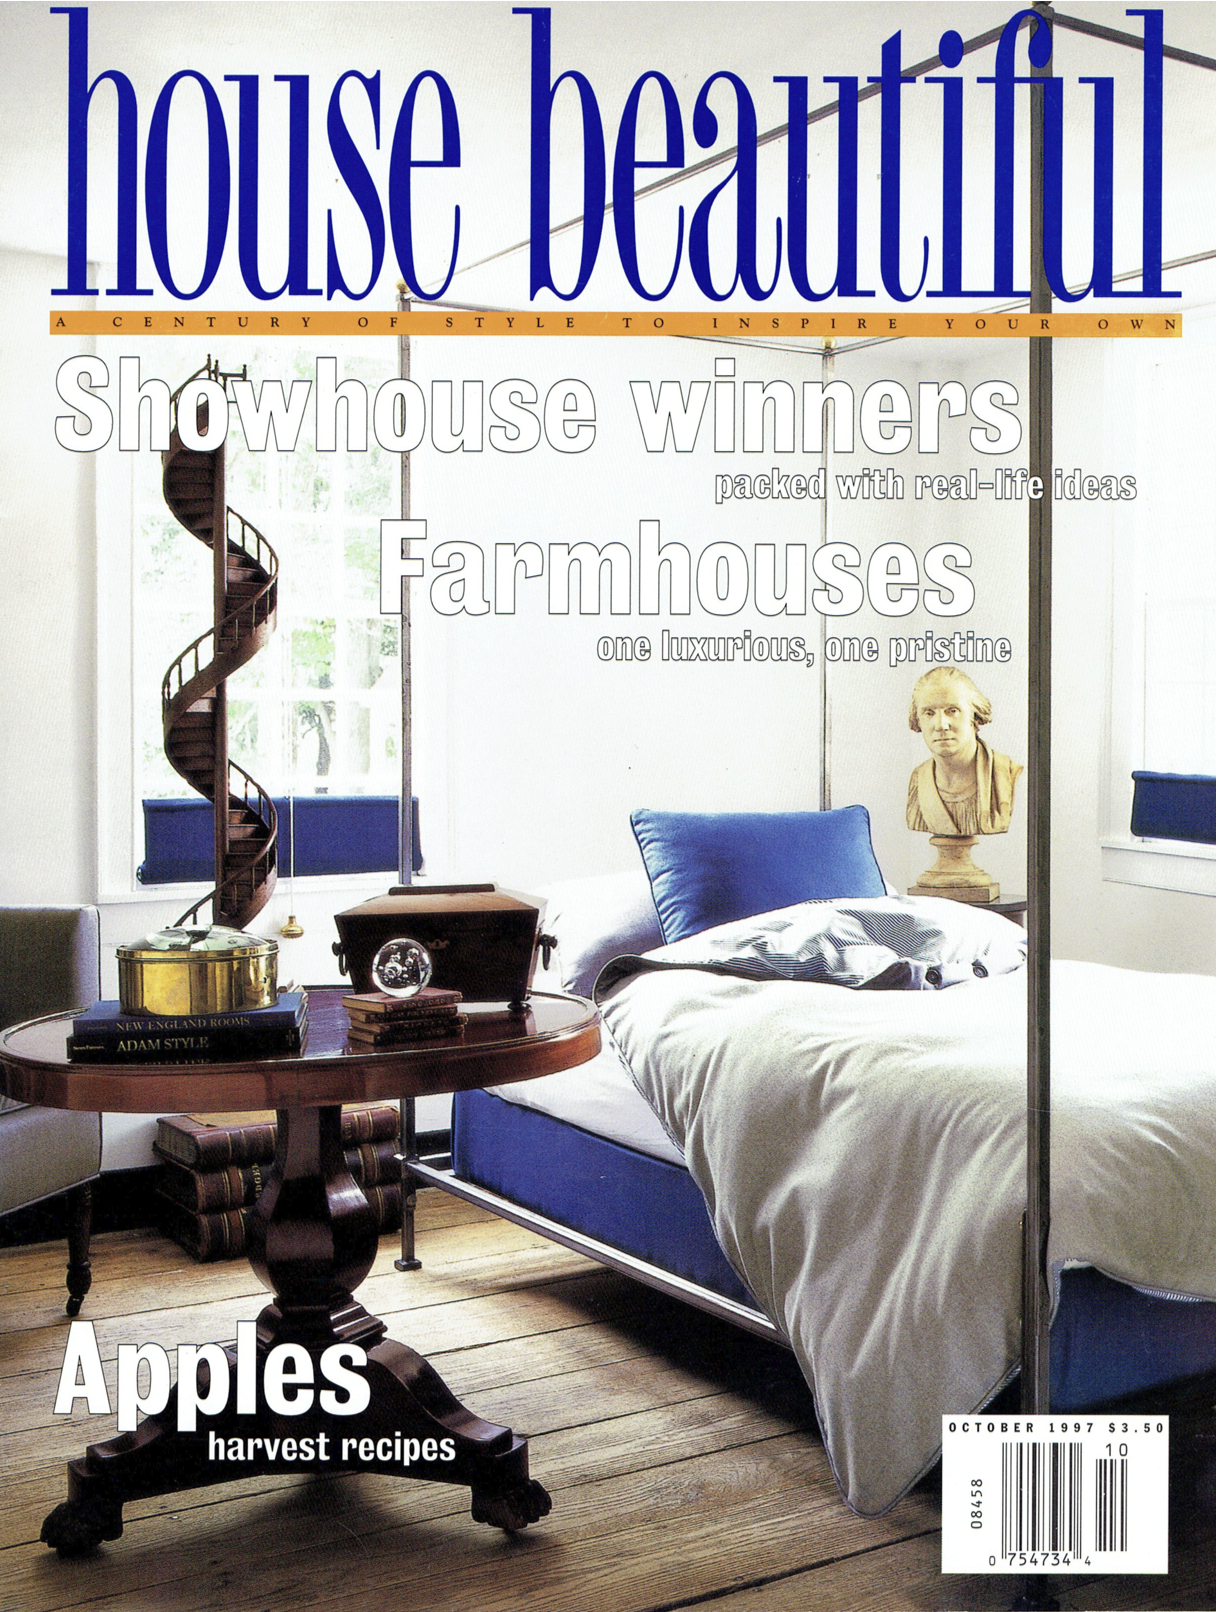 House Beautiful Cover.jpg